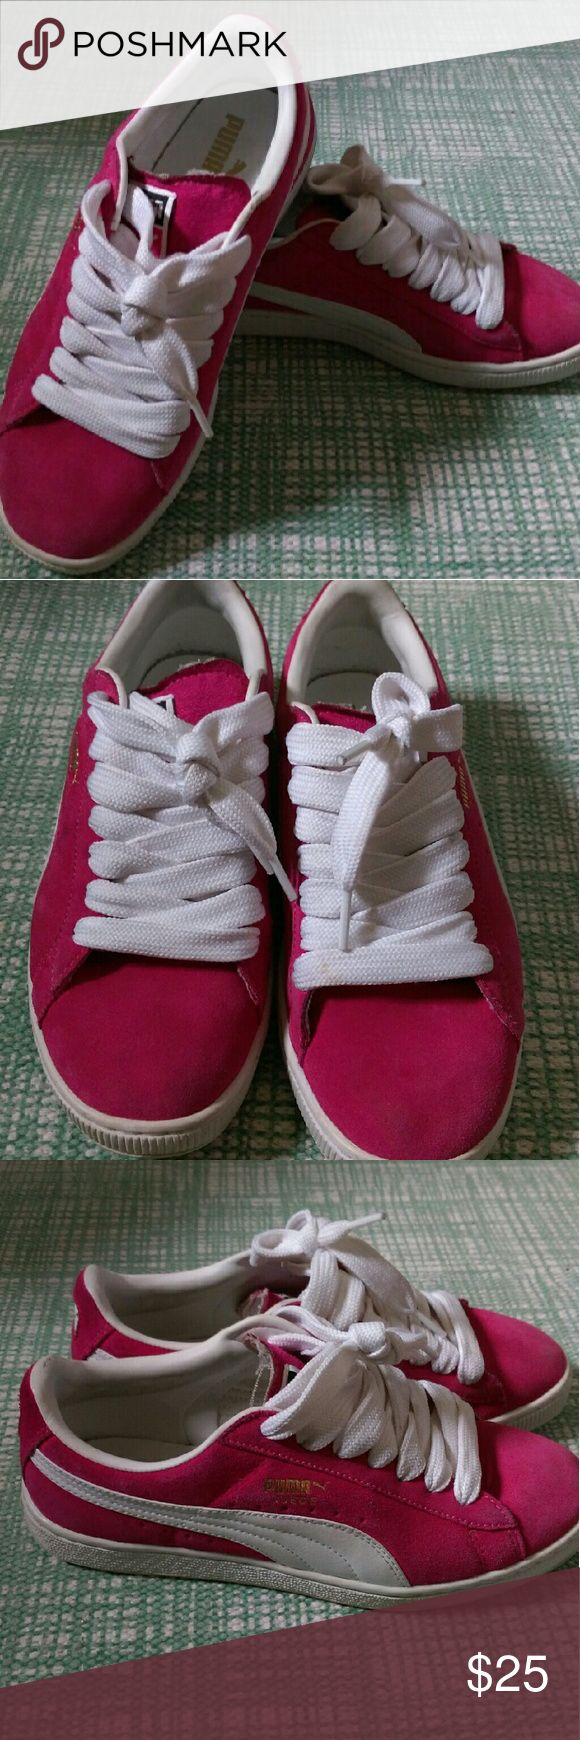 Like new! Pink Puma's Barely worn. Pink Puma classic sneakers. Size 5 in big kids = 7 women Puma Shoes Sneakers